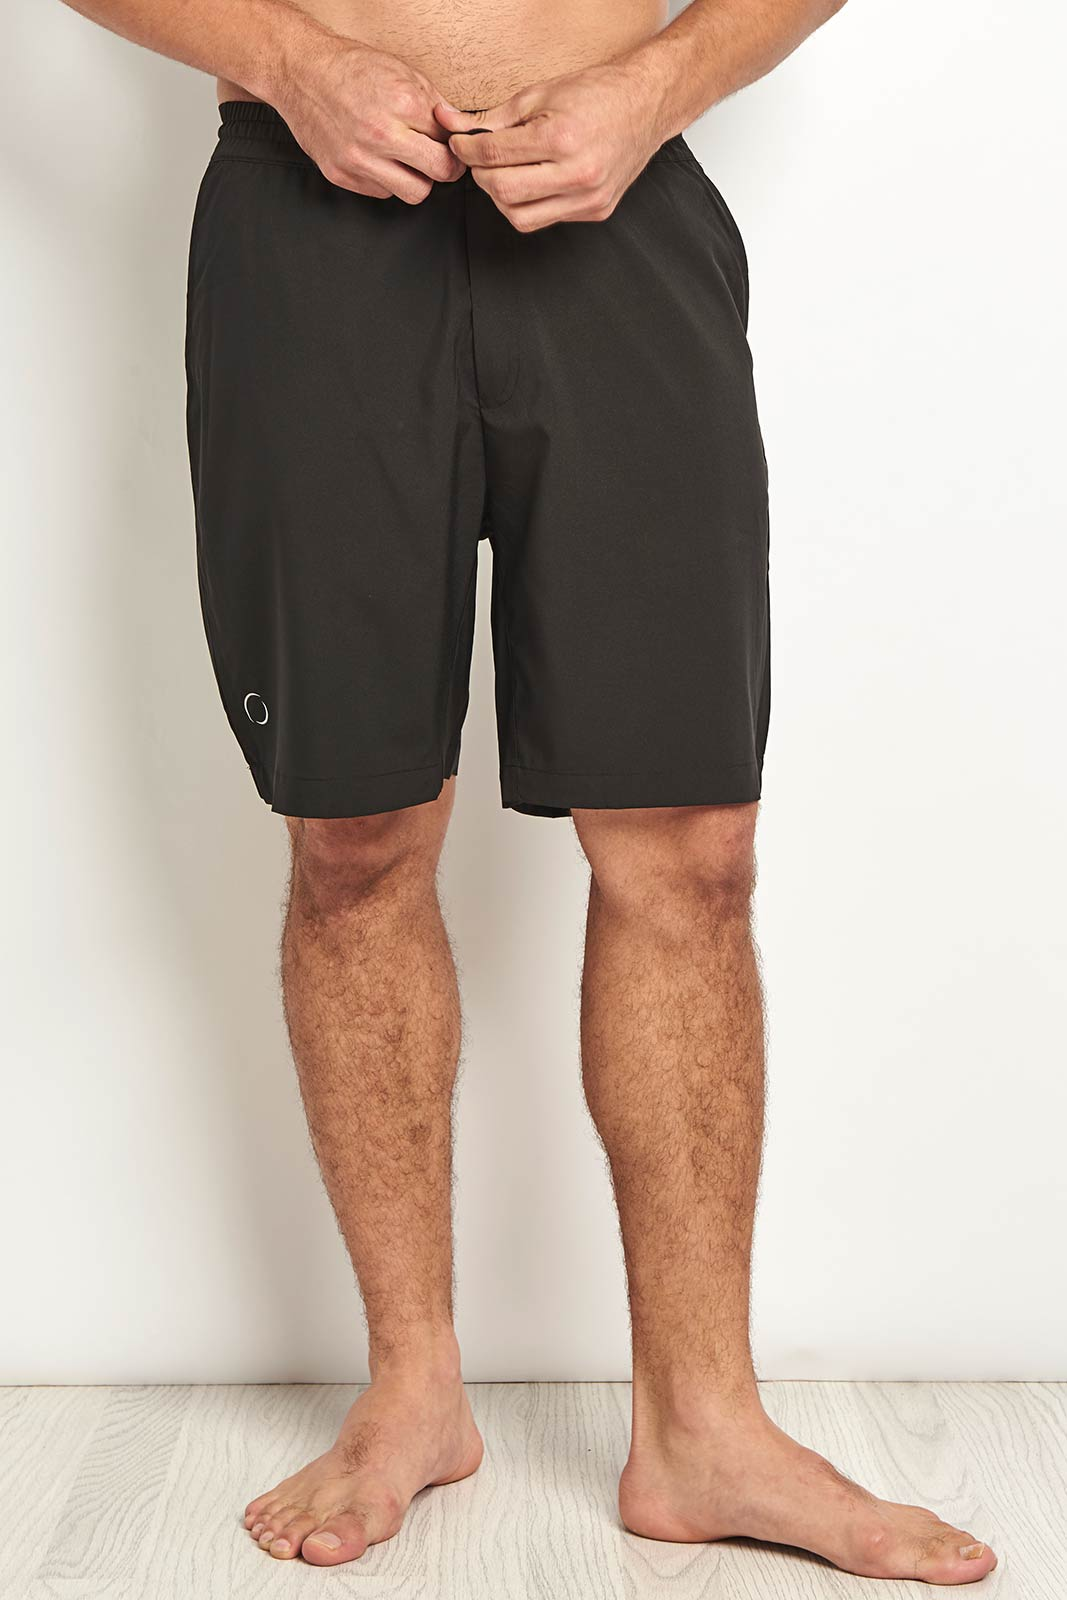 OHMME Warrior II Lined Yoga Shorts image 1 - The Sports Edit